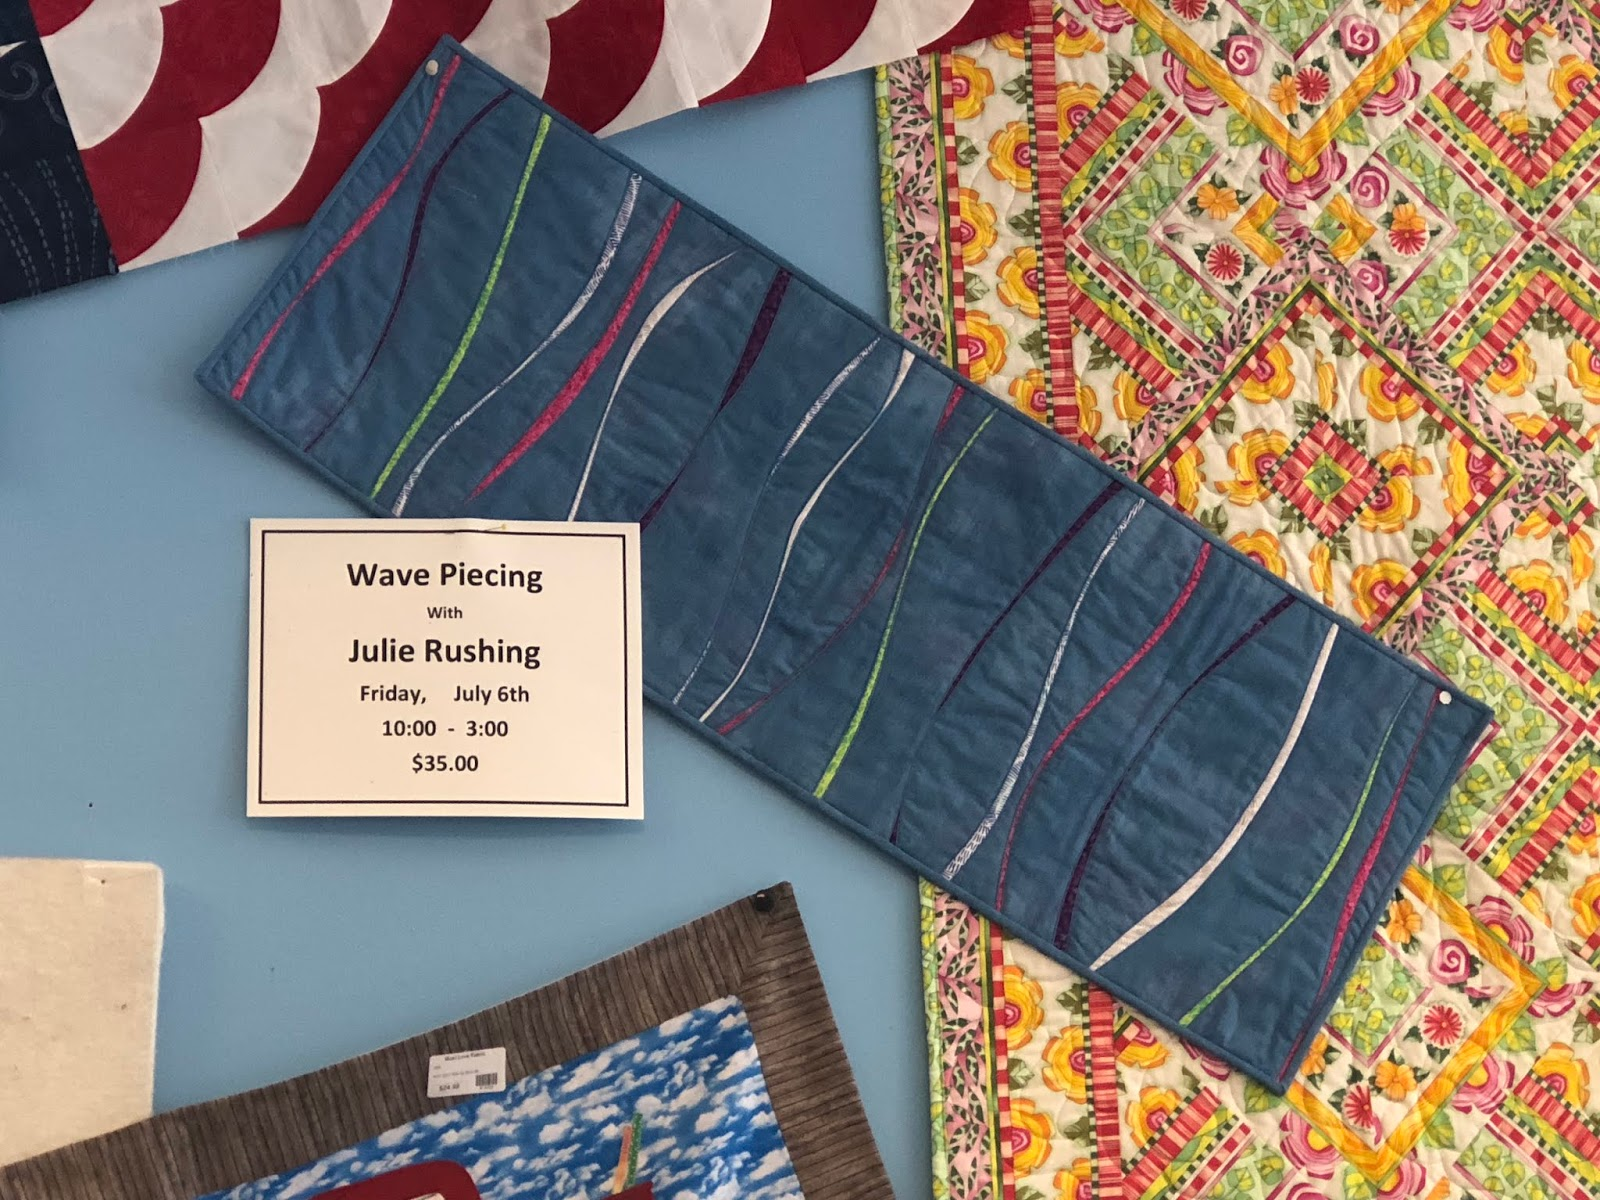 There Have Been Several Requests From Other Quilters To Learn